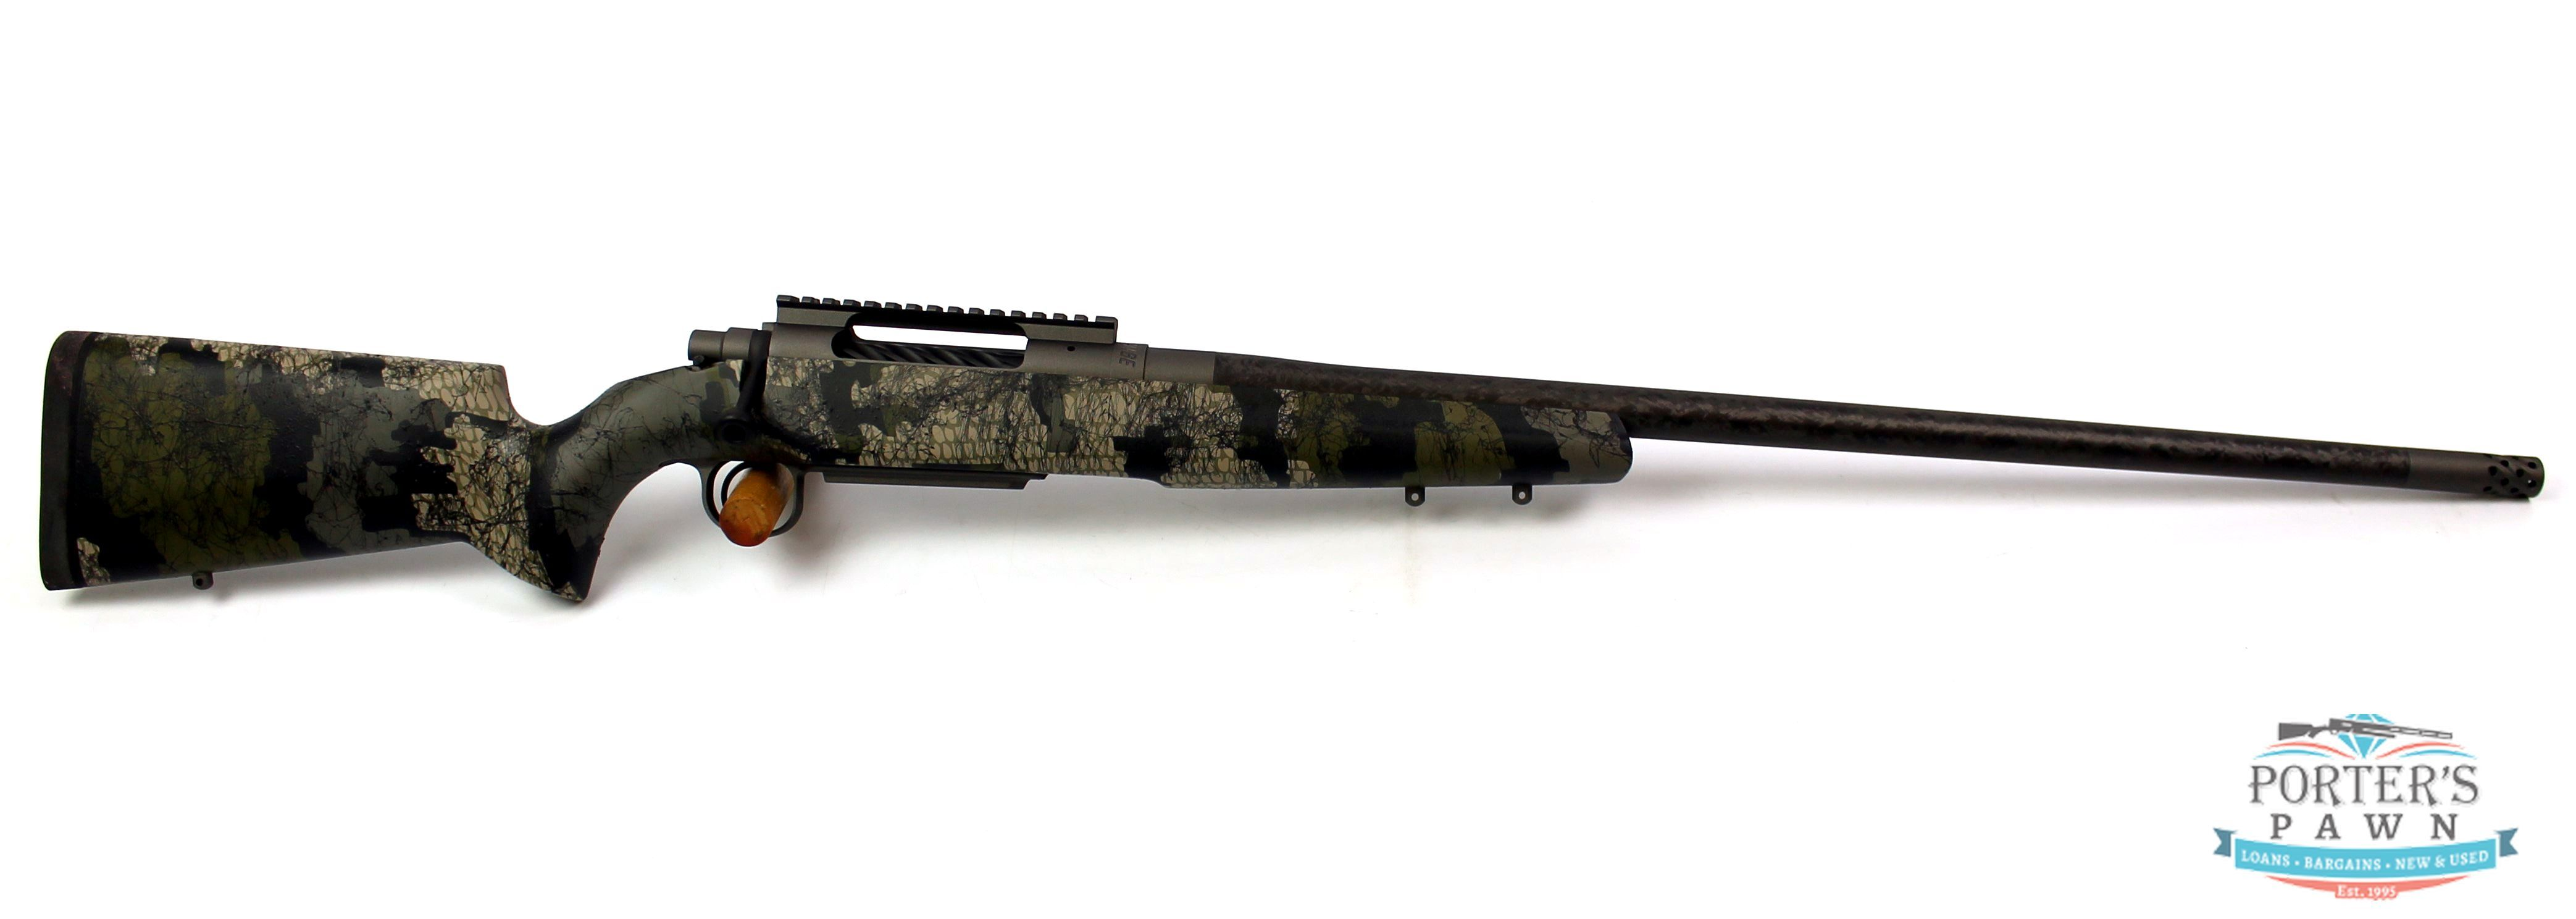 Cooper M52 Open Country LR Lightweight 7mm Rem Mag-img-1